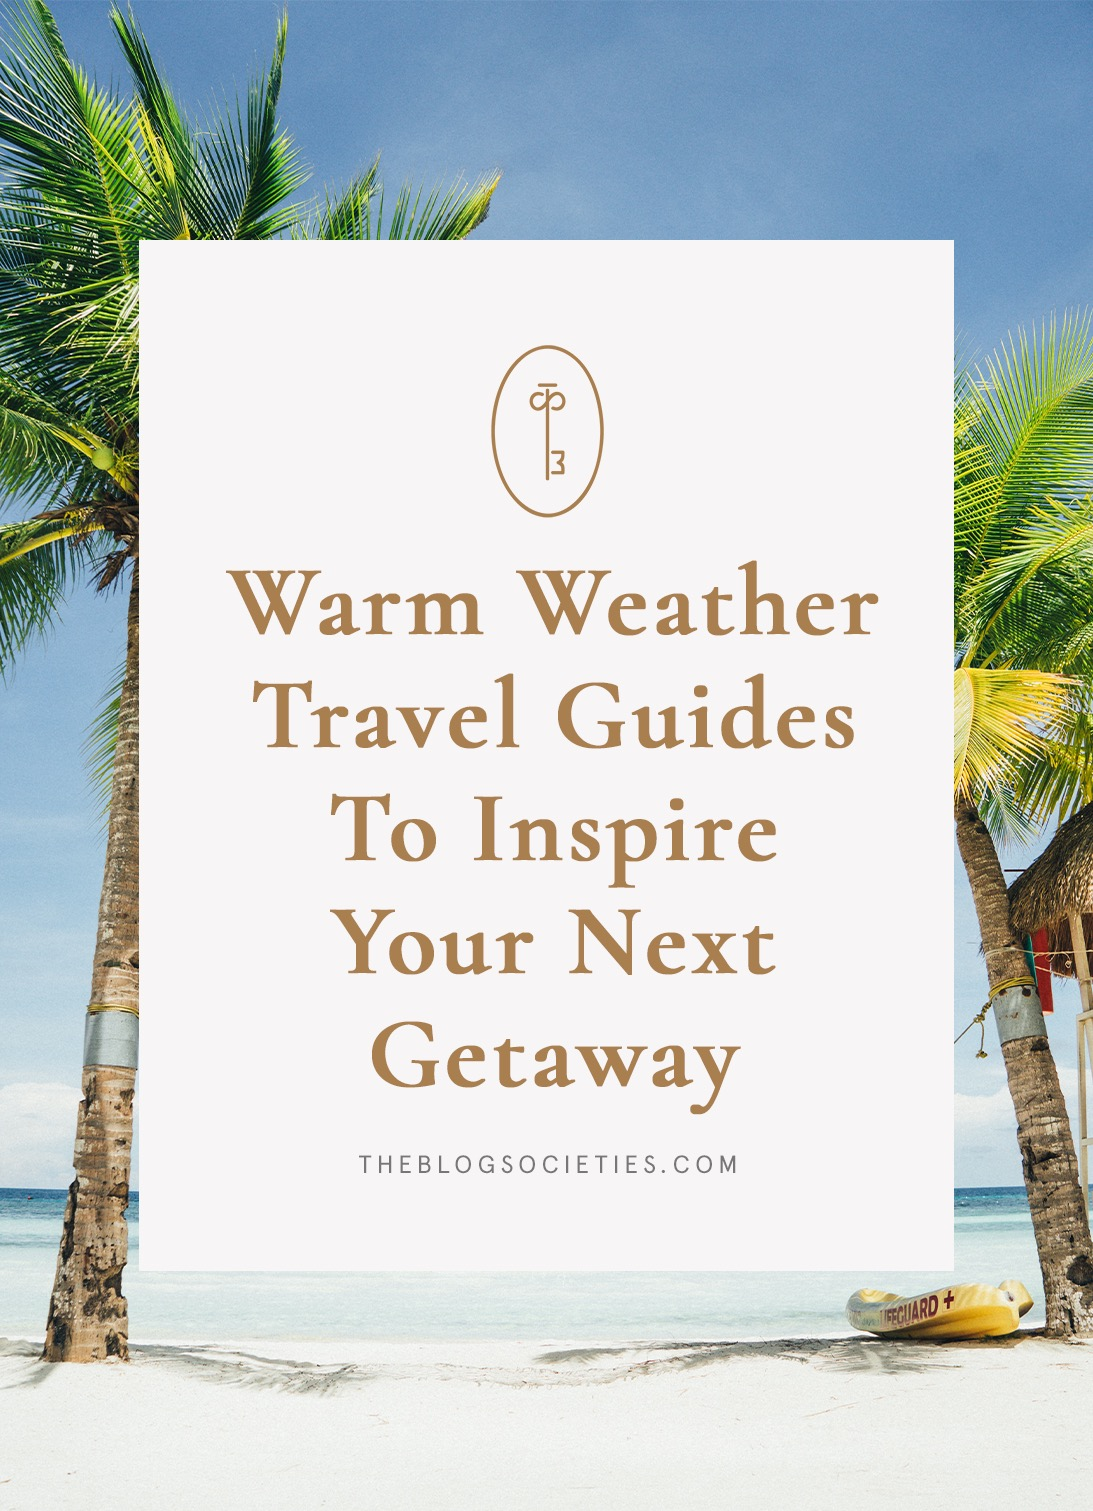 warm weather travel guides, vacation ideas for warm weather